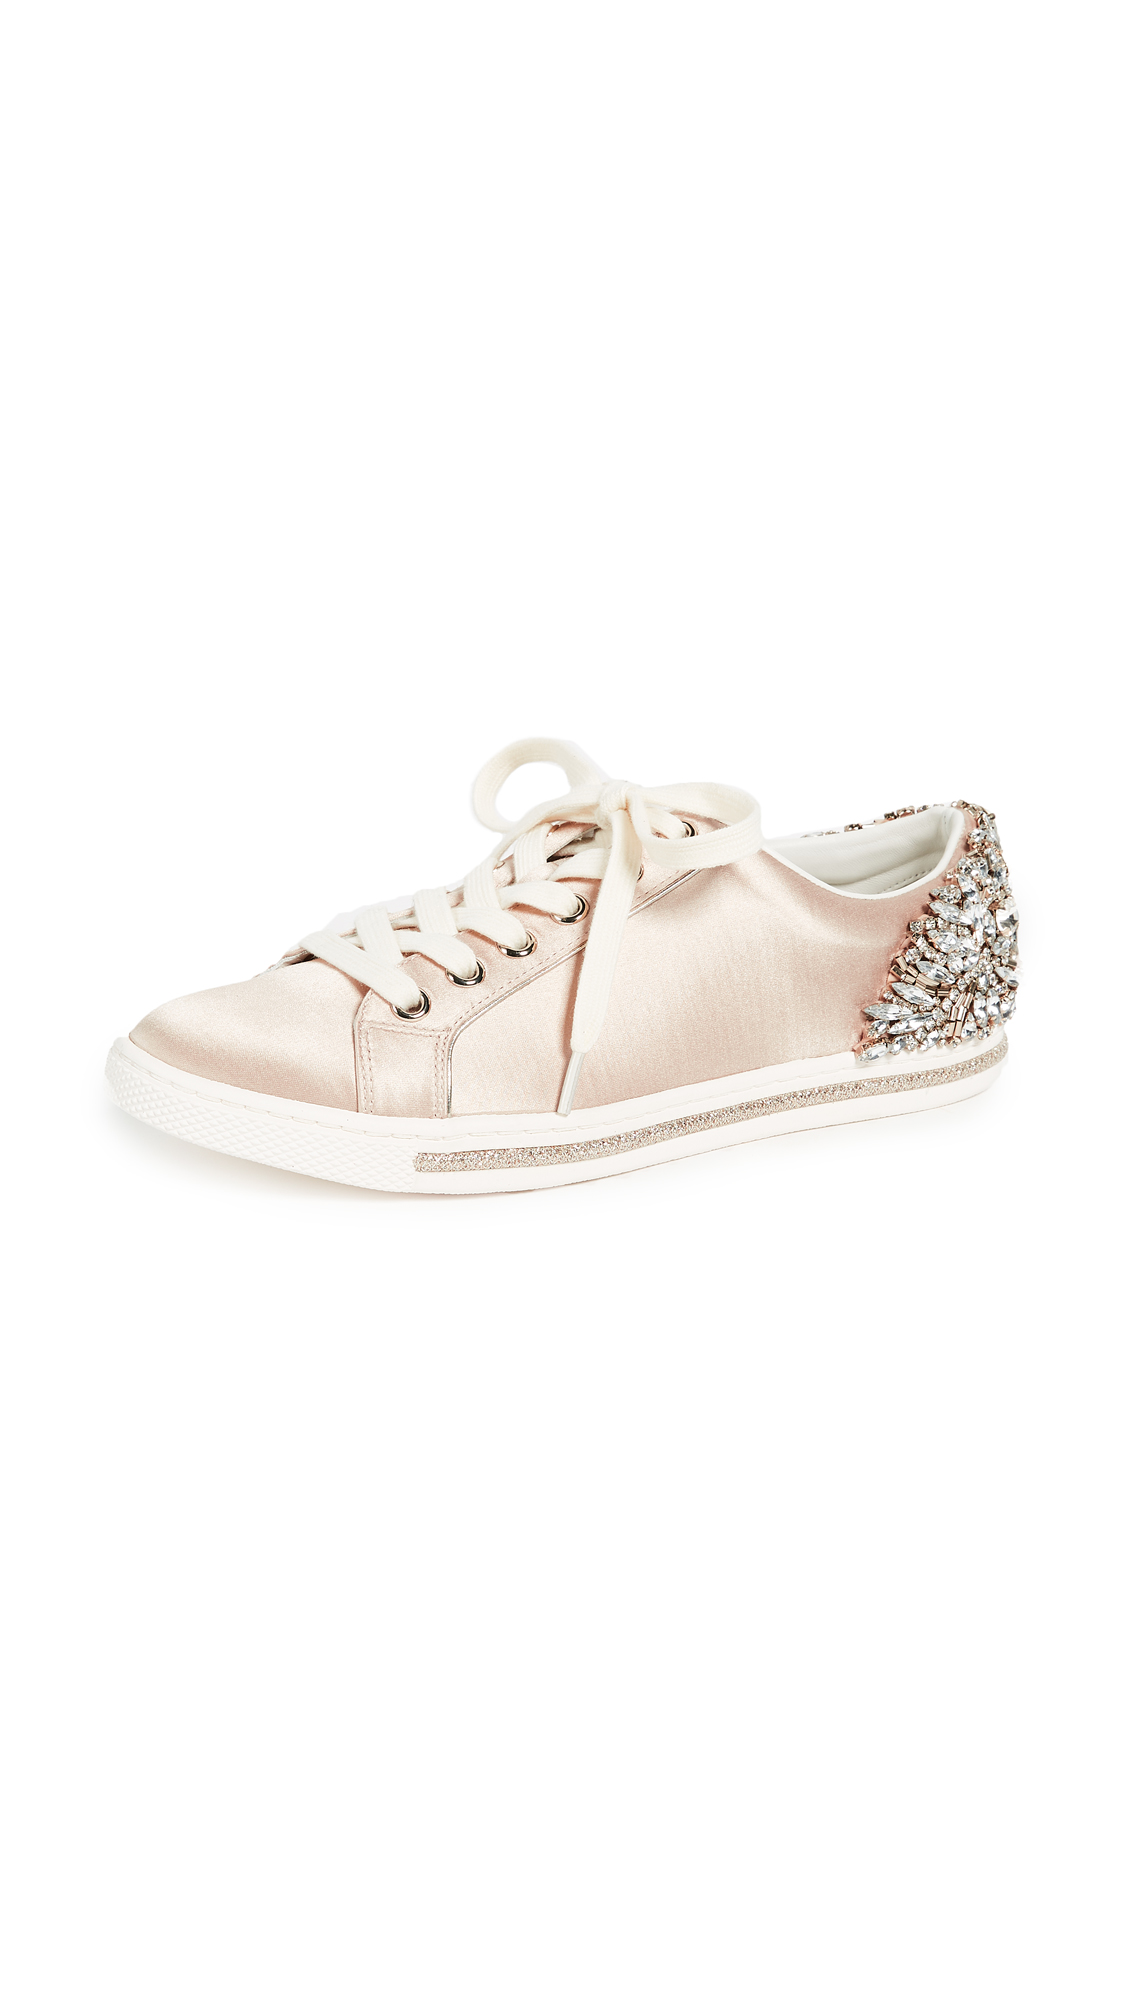 Badgley Mischka Shirley Lace Up Sneakers - Nude